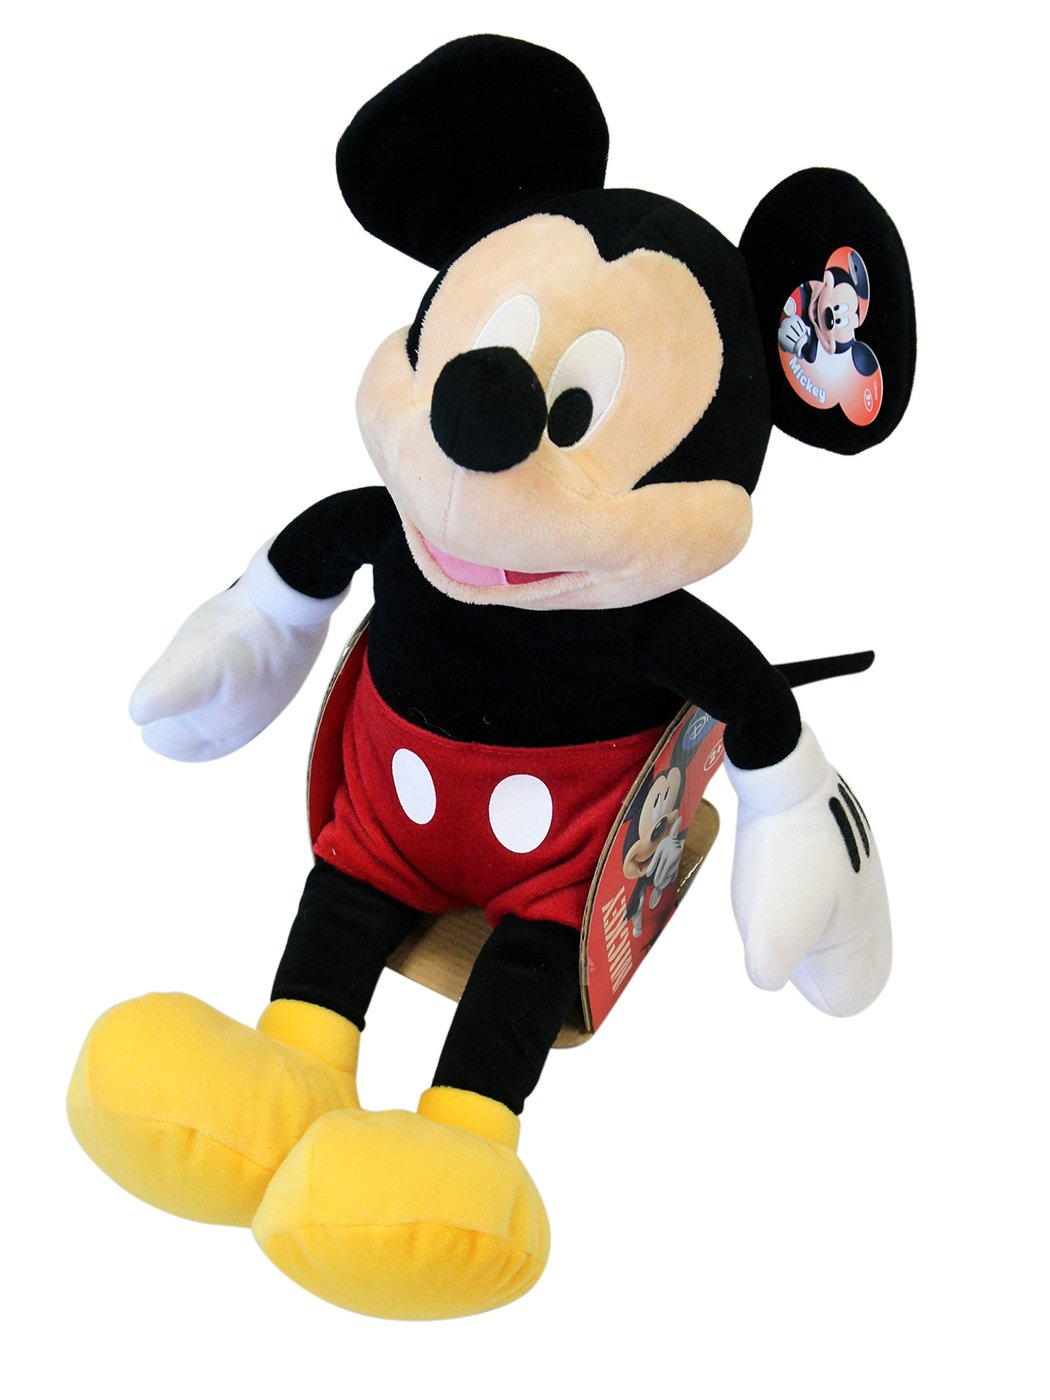 Just Play Plush Toys - Disney - MICKEY MOUSE (19 inch)